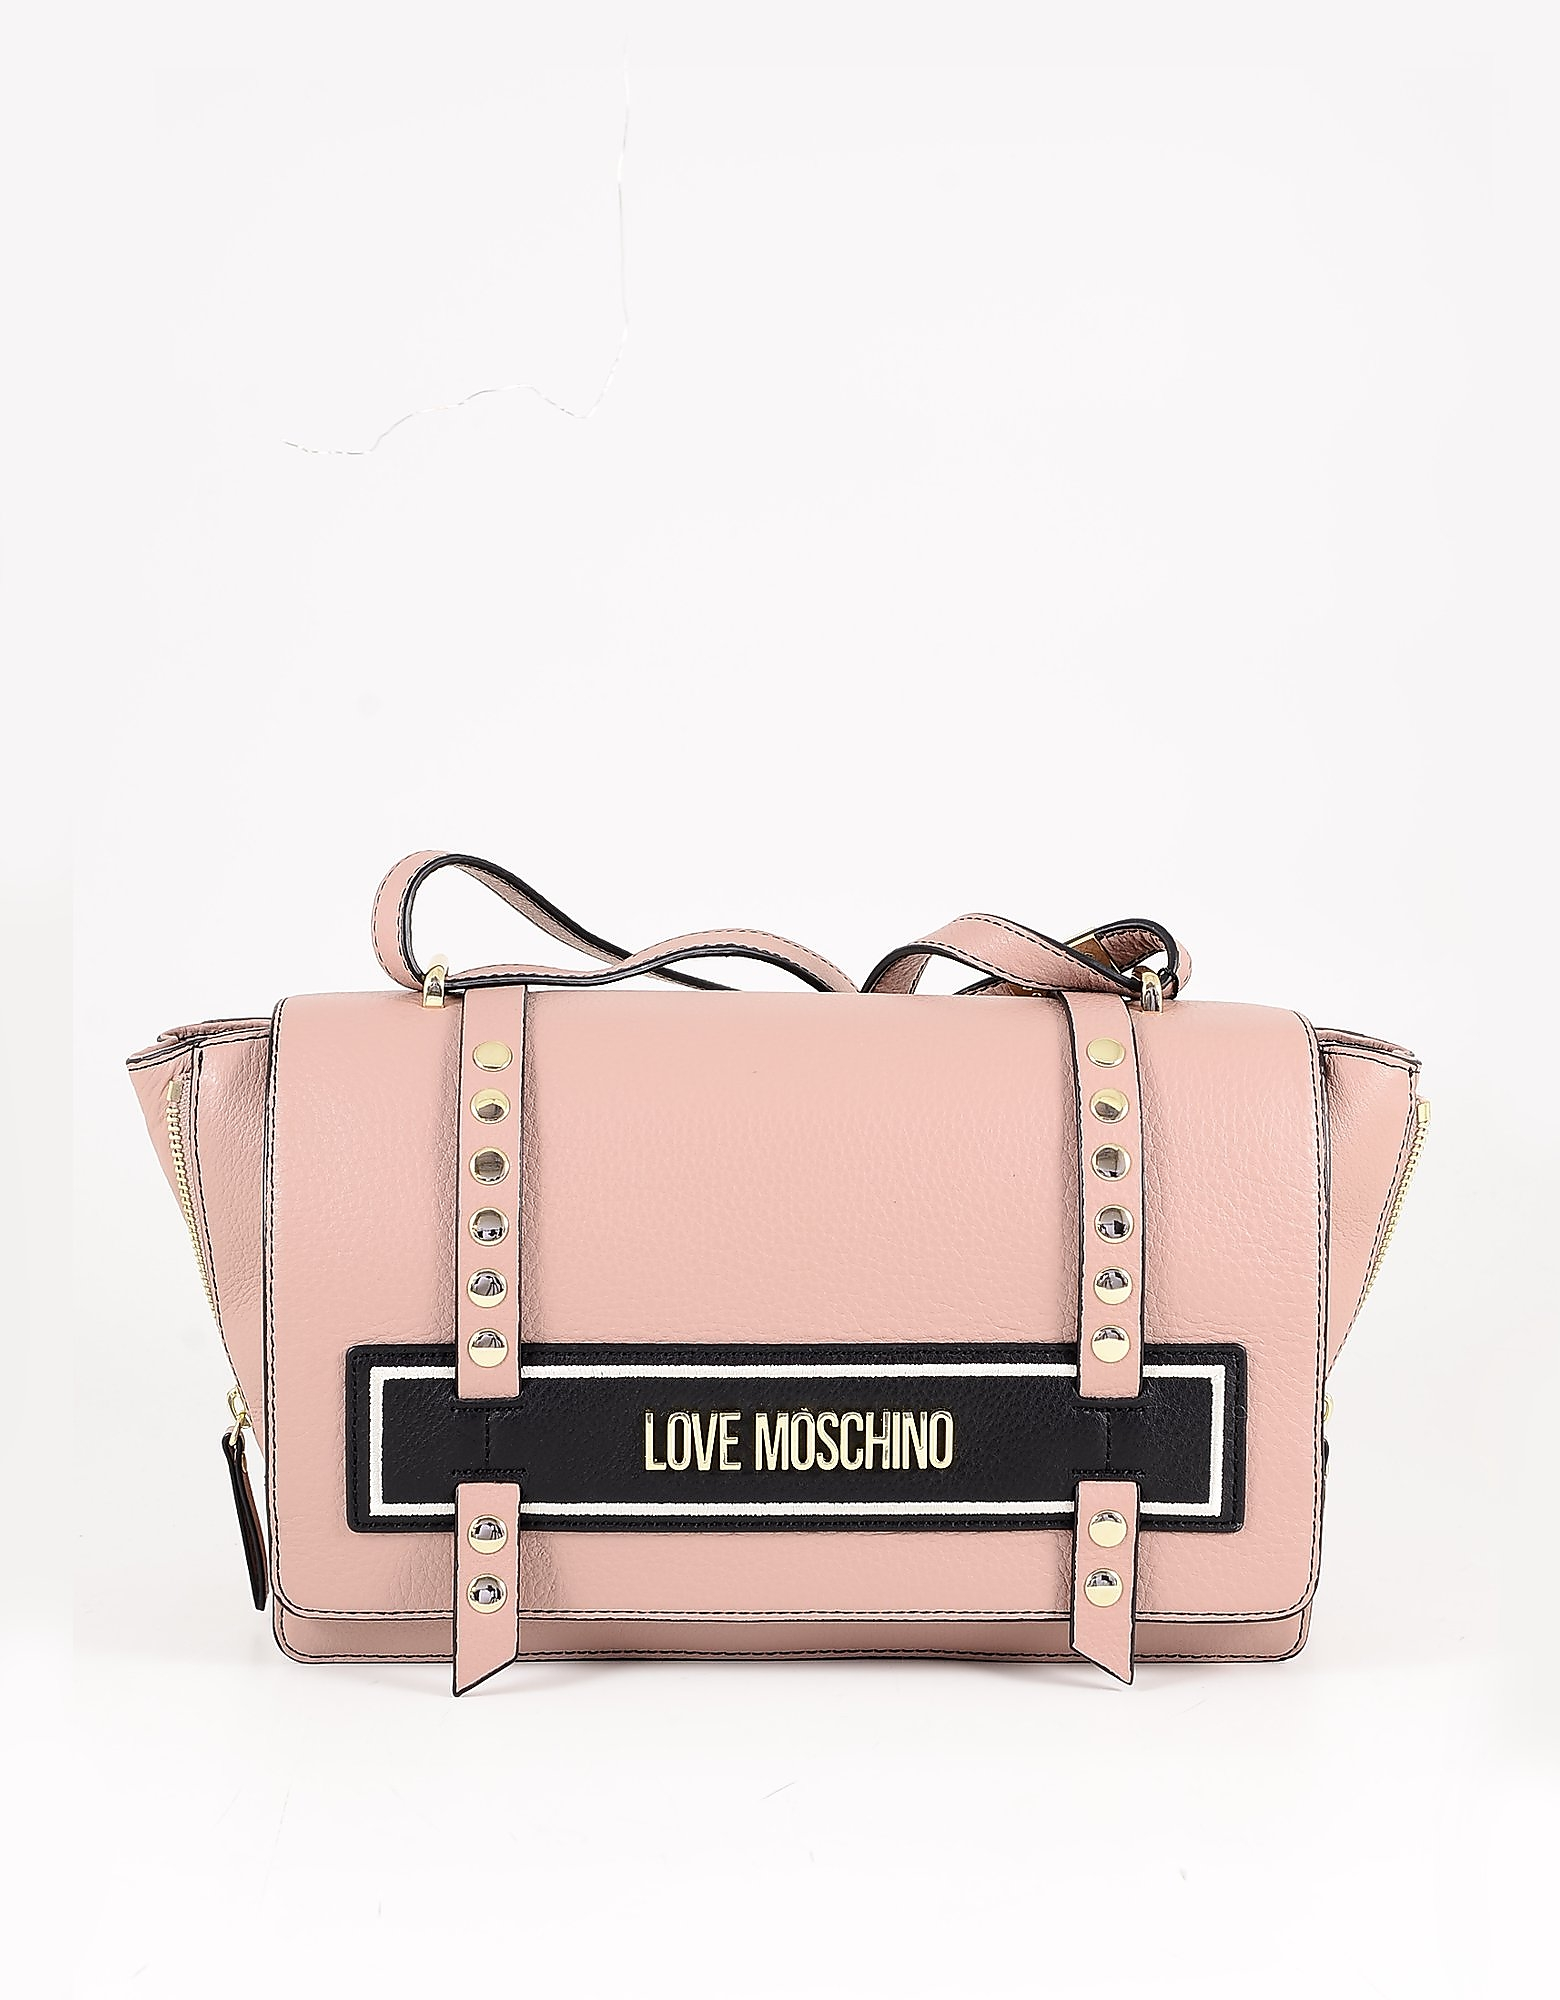 Love Moschino Powder Pink Leather Shoulder Bag